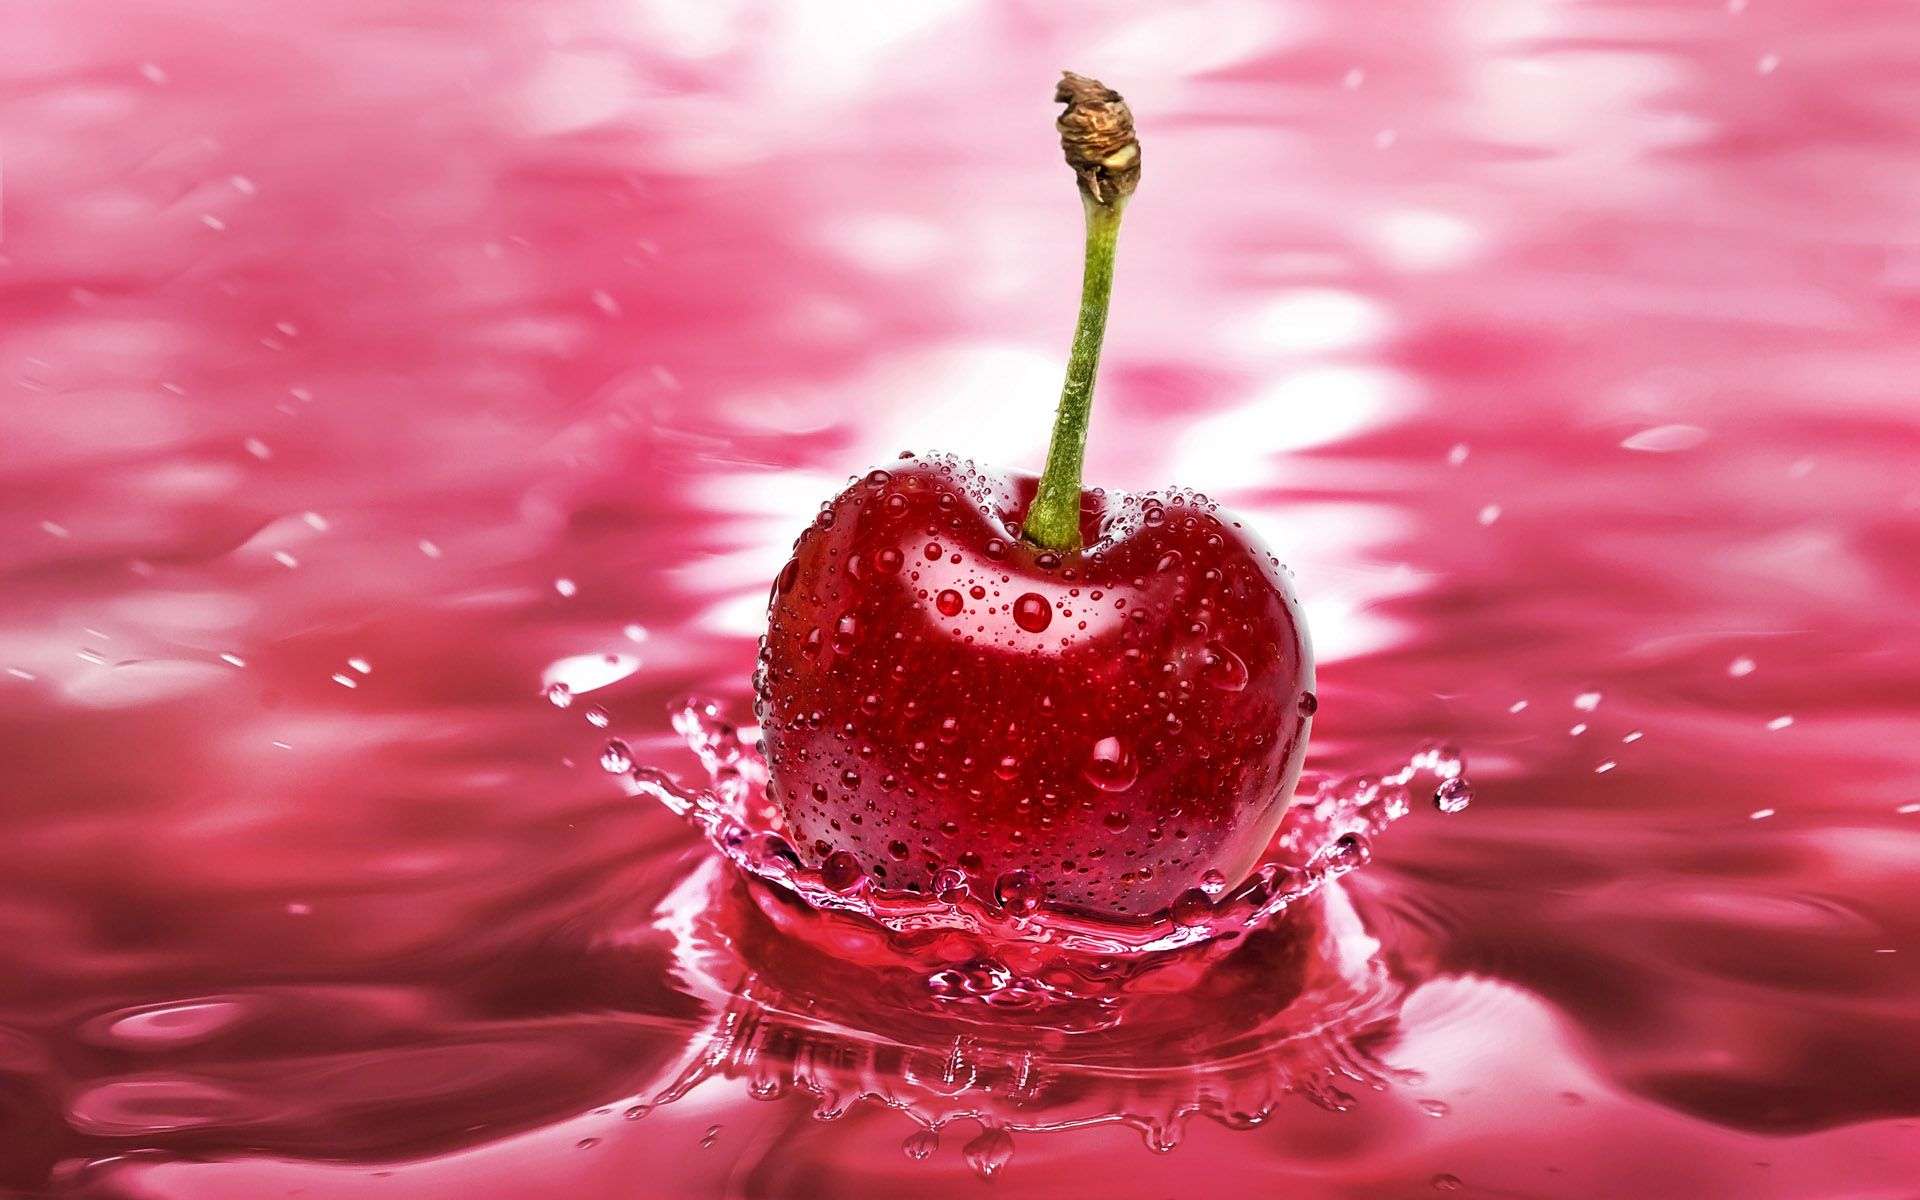 Fruits 3d wallpapers - Images 3d Hd Hd Fresh Apple 3d Wallpaper